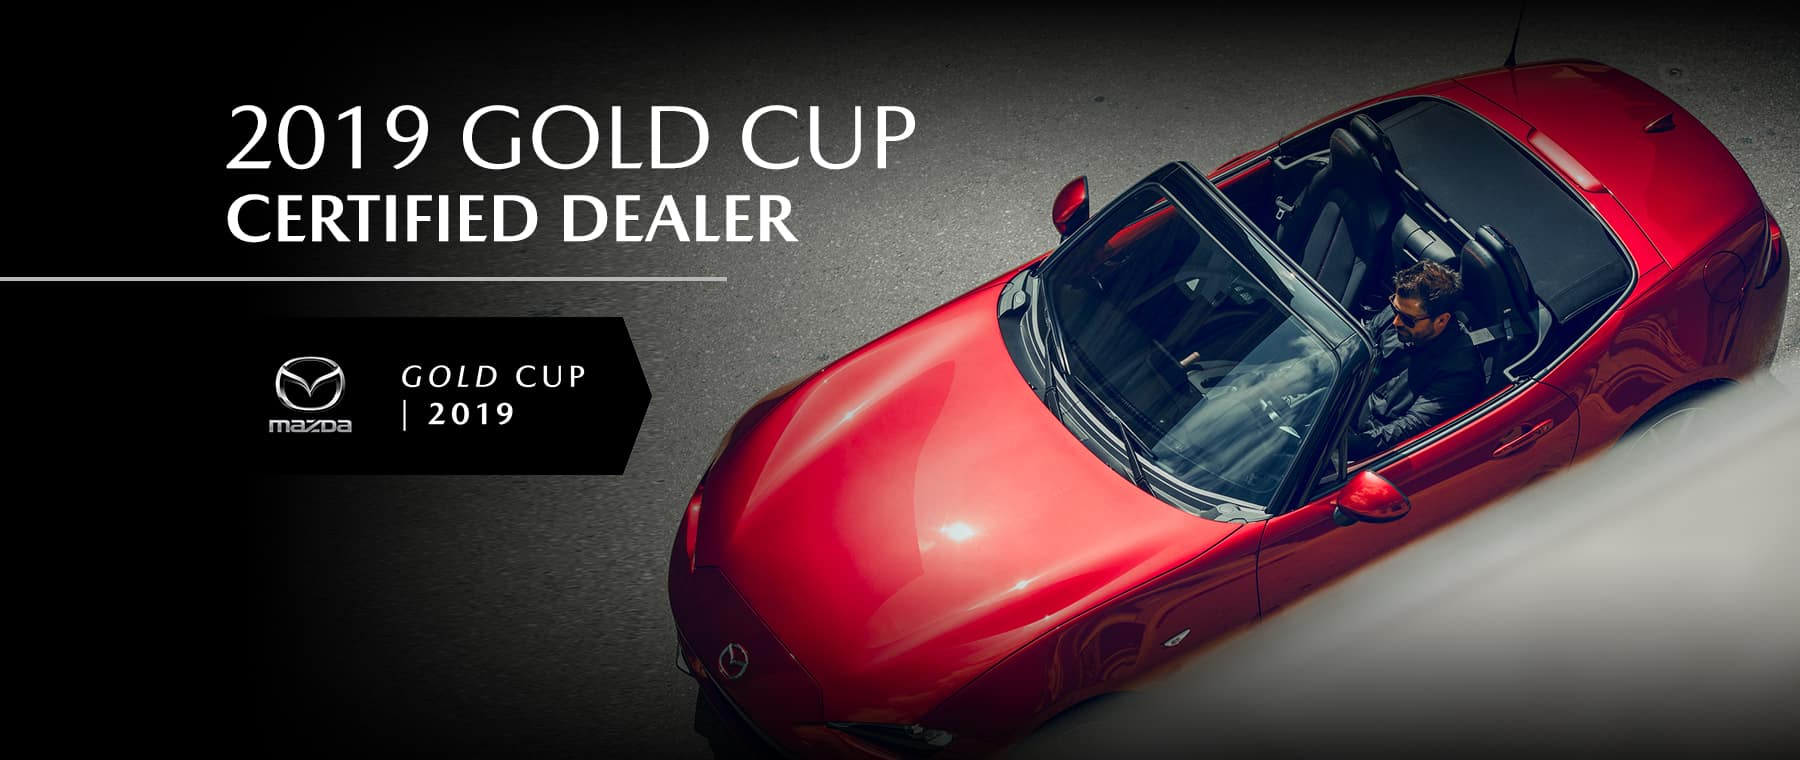 2019 gold cup